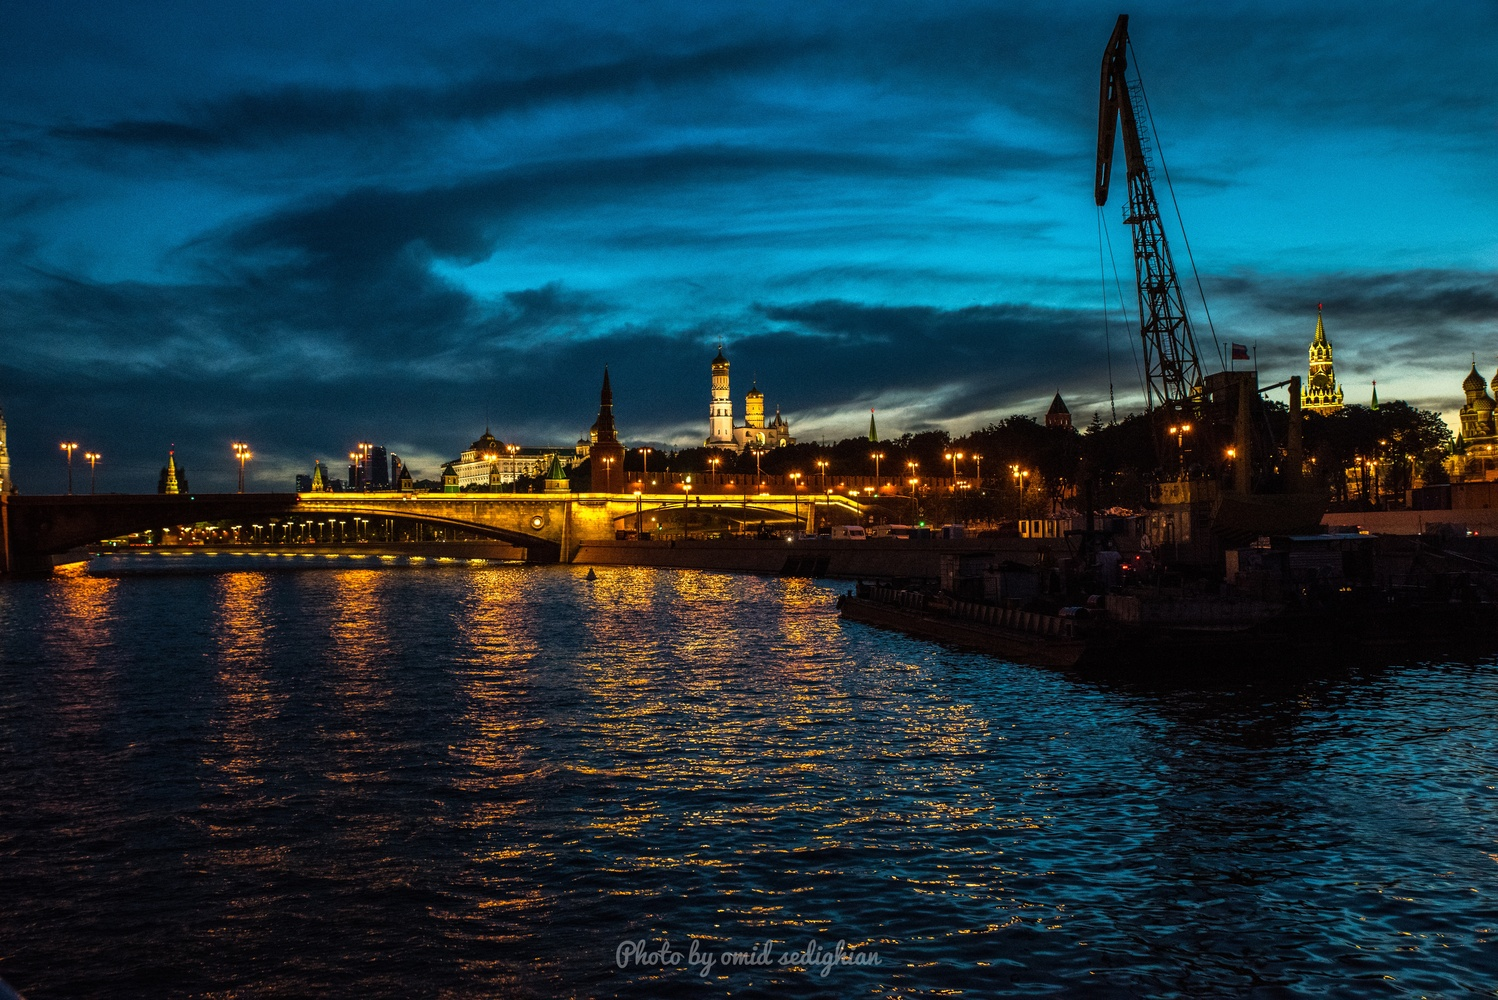 River light show by omid sedighian